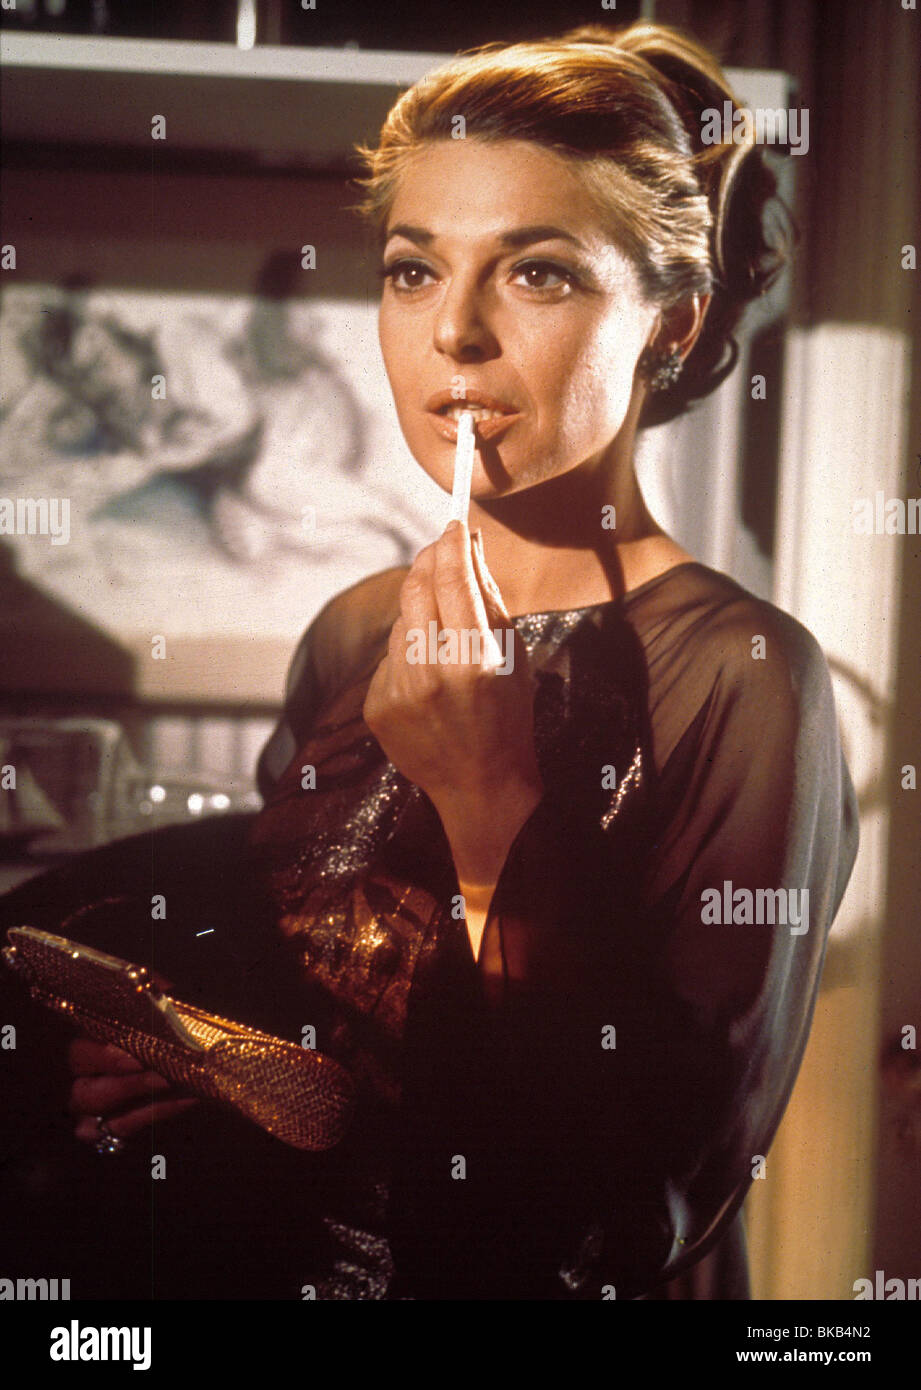 THE GRADUATE (1967) ANNE BANCROFT GRD 041 - Stock Image